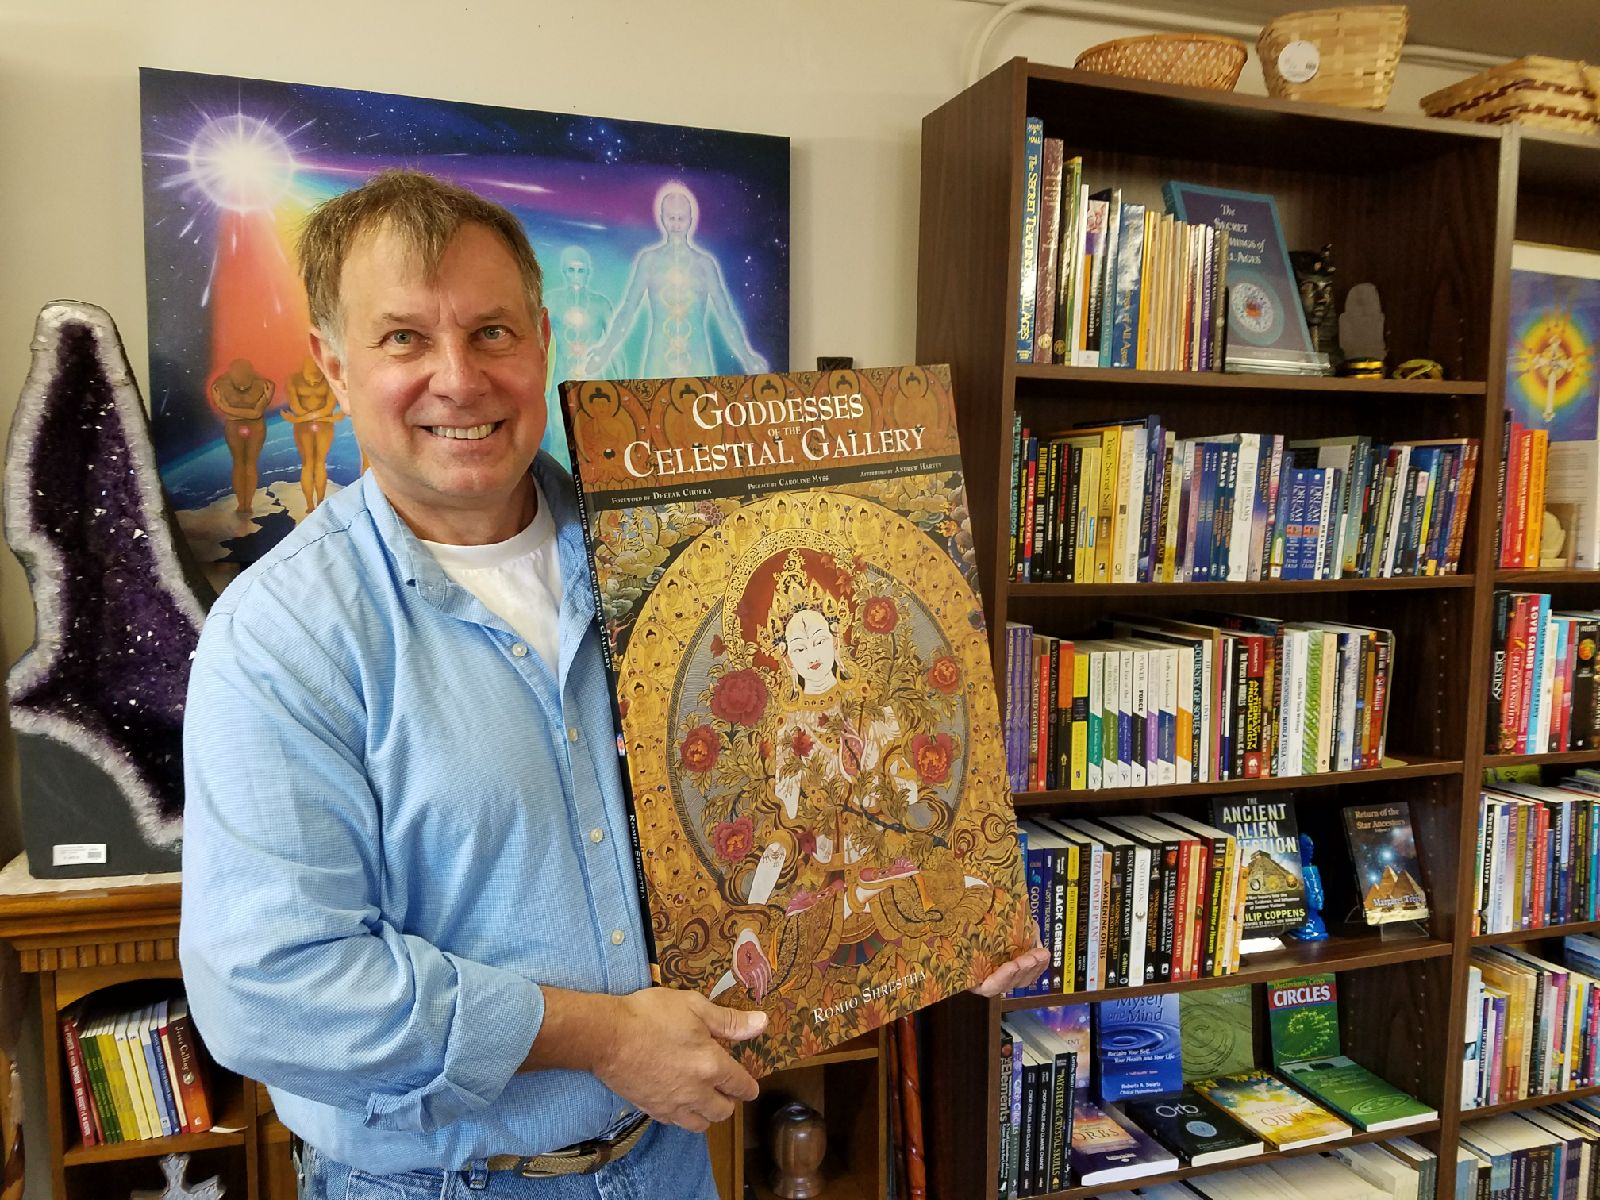 fred jenning rogers aquarius books and gifts grants pass oregon goddesses celestial gallery romio